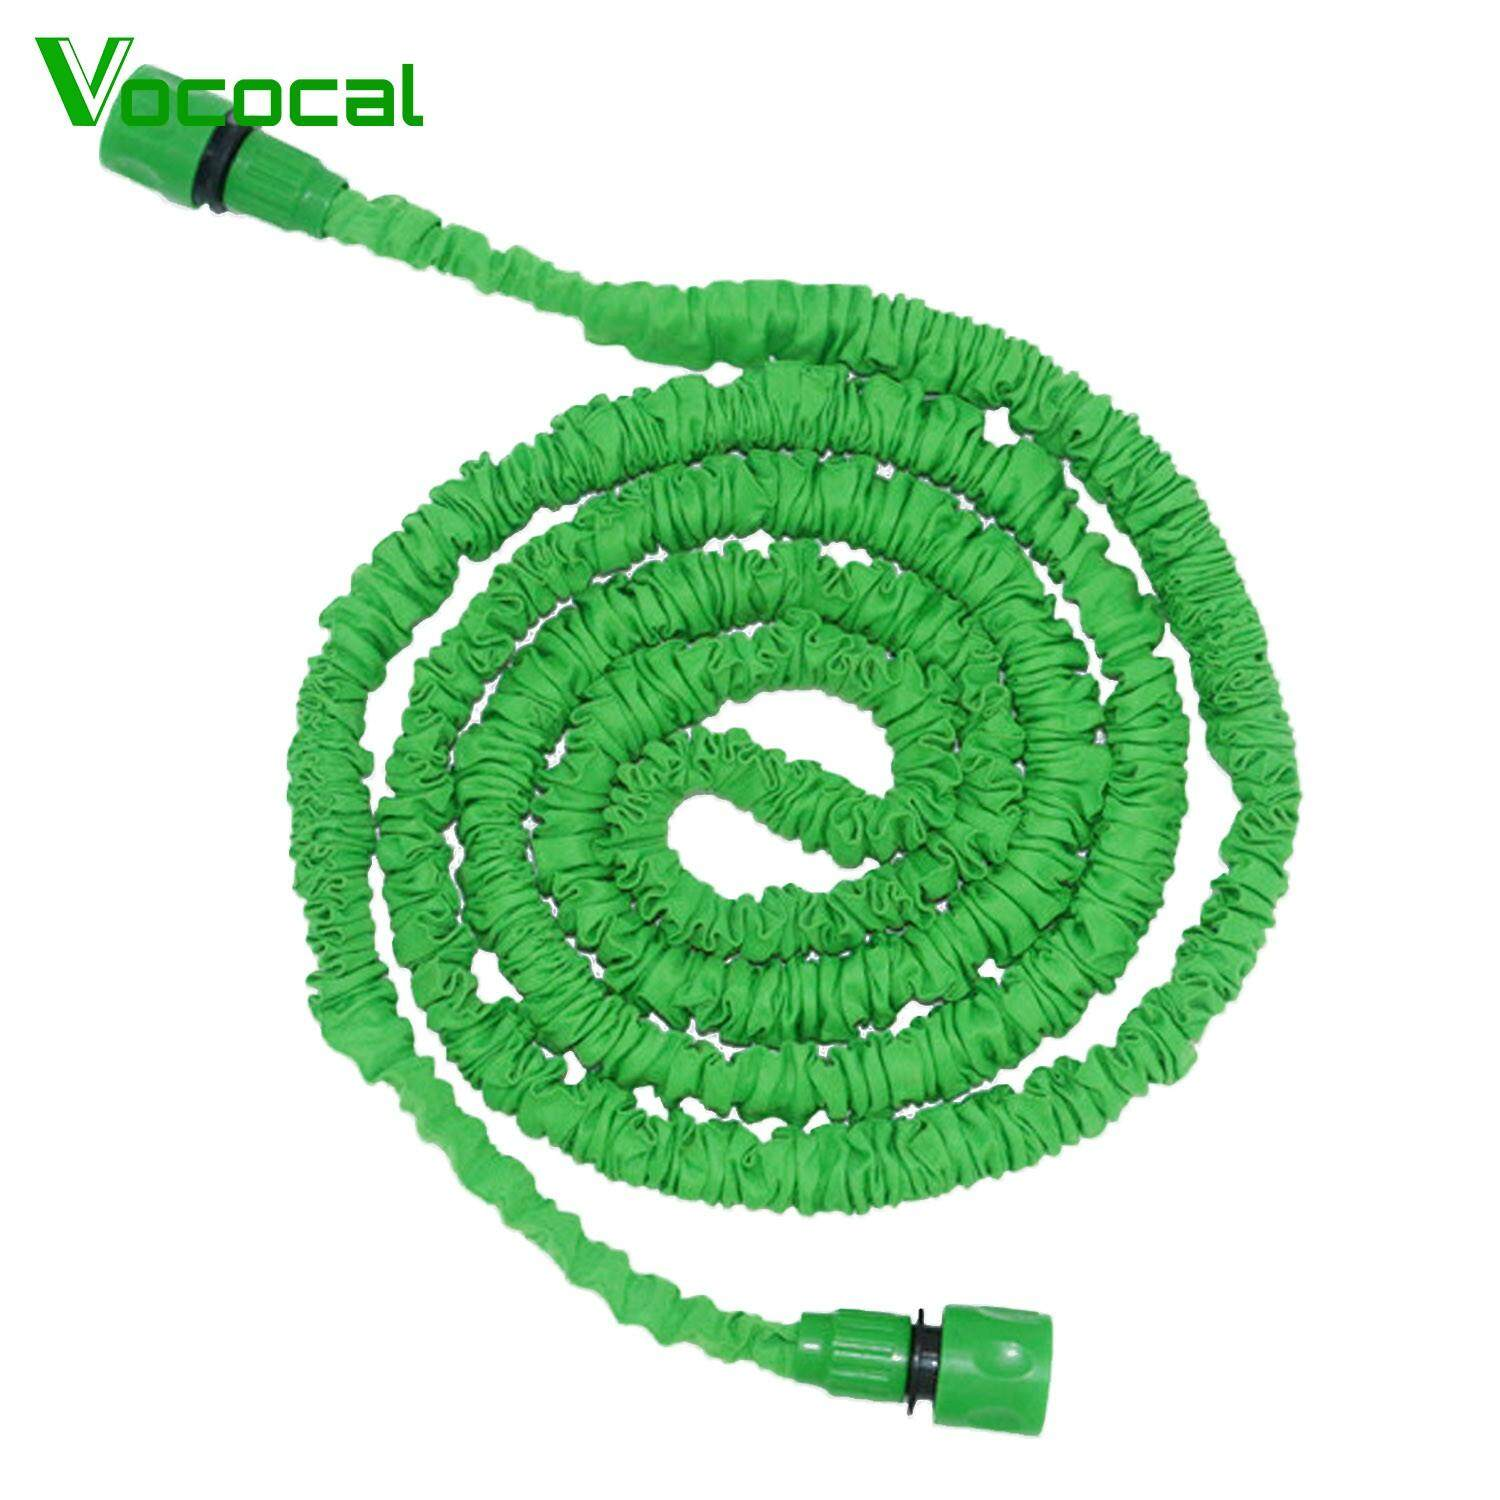 【Free shipping】Vococal 100ft Expandable High Pressure Garden Water Sprayer Hose with 2PCS Connectors for Washing Windows Floor Car Watering Flowers Vegetables Green